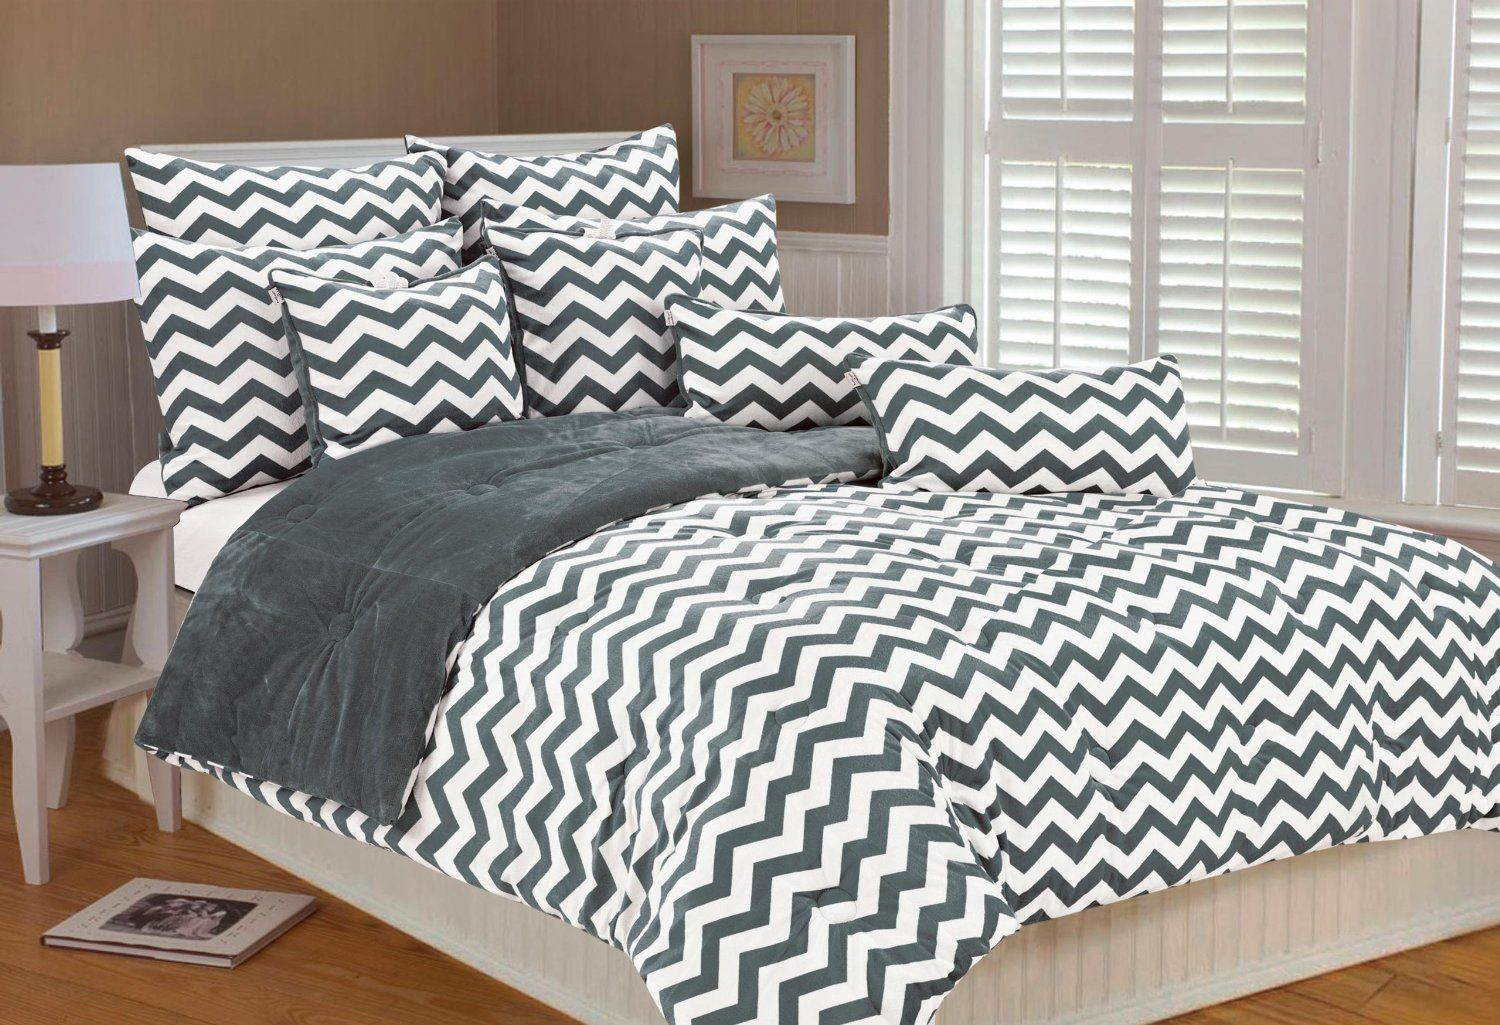 gray and white chevron bedding sets gray and white chevron bedding is a very popular look right. Black Bedroom Furniture Sets. Home Design Ideas